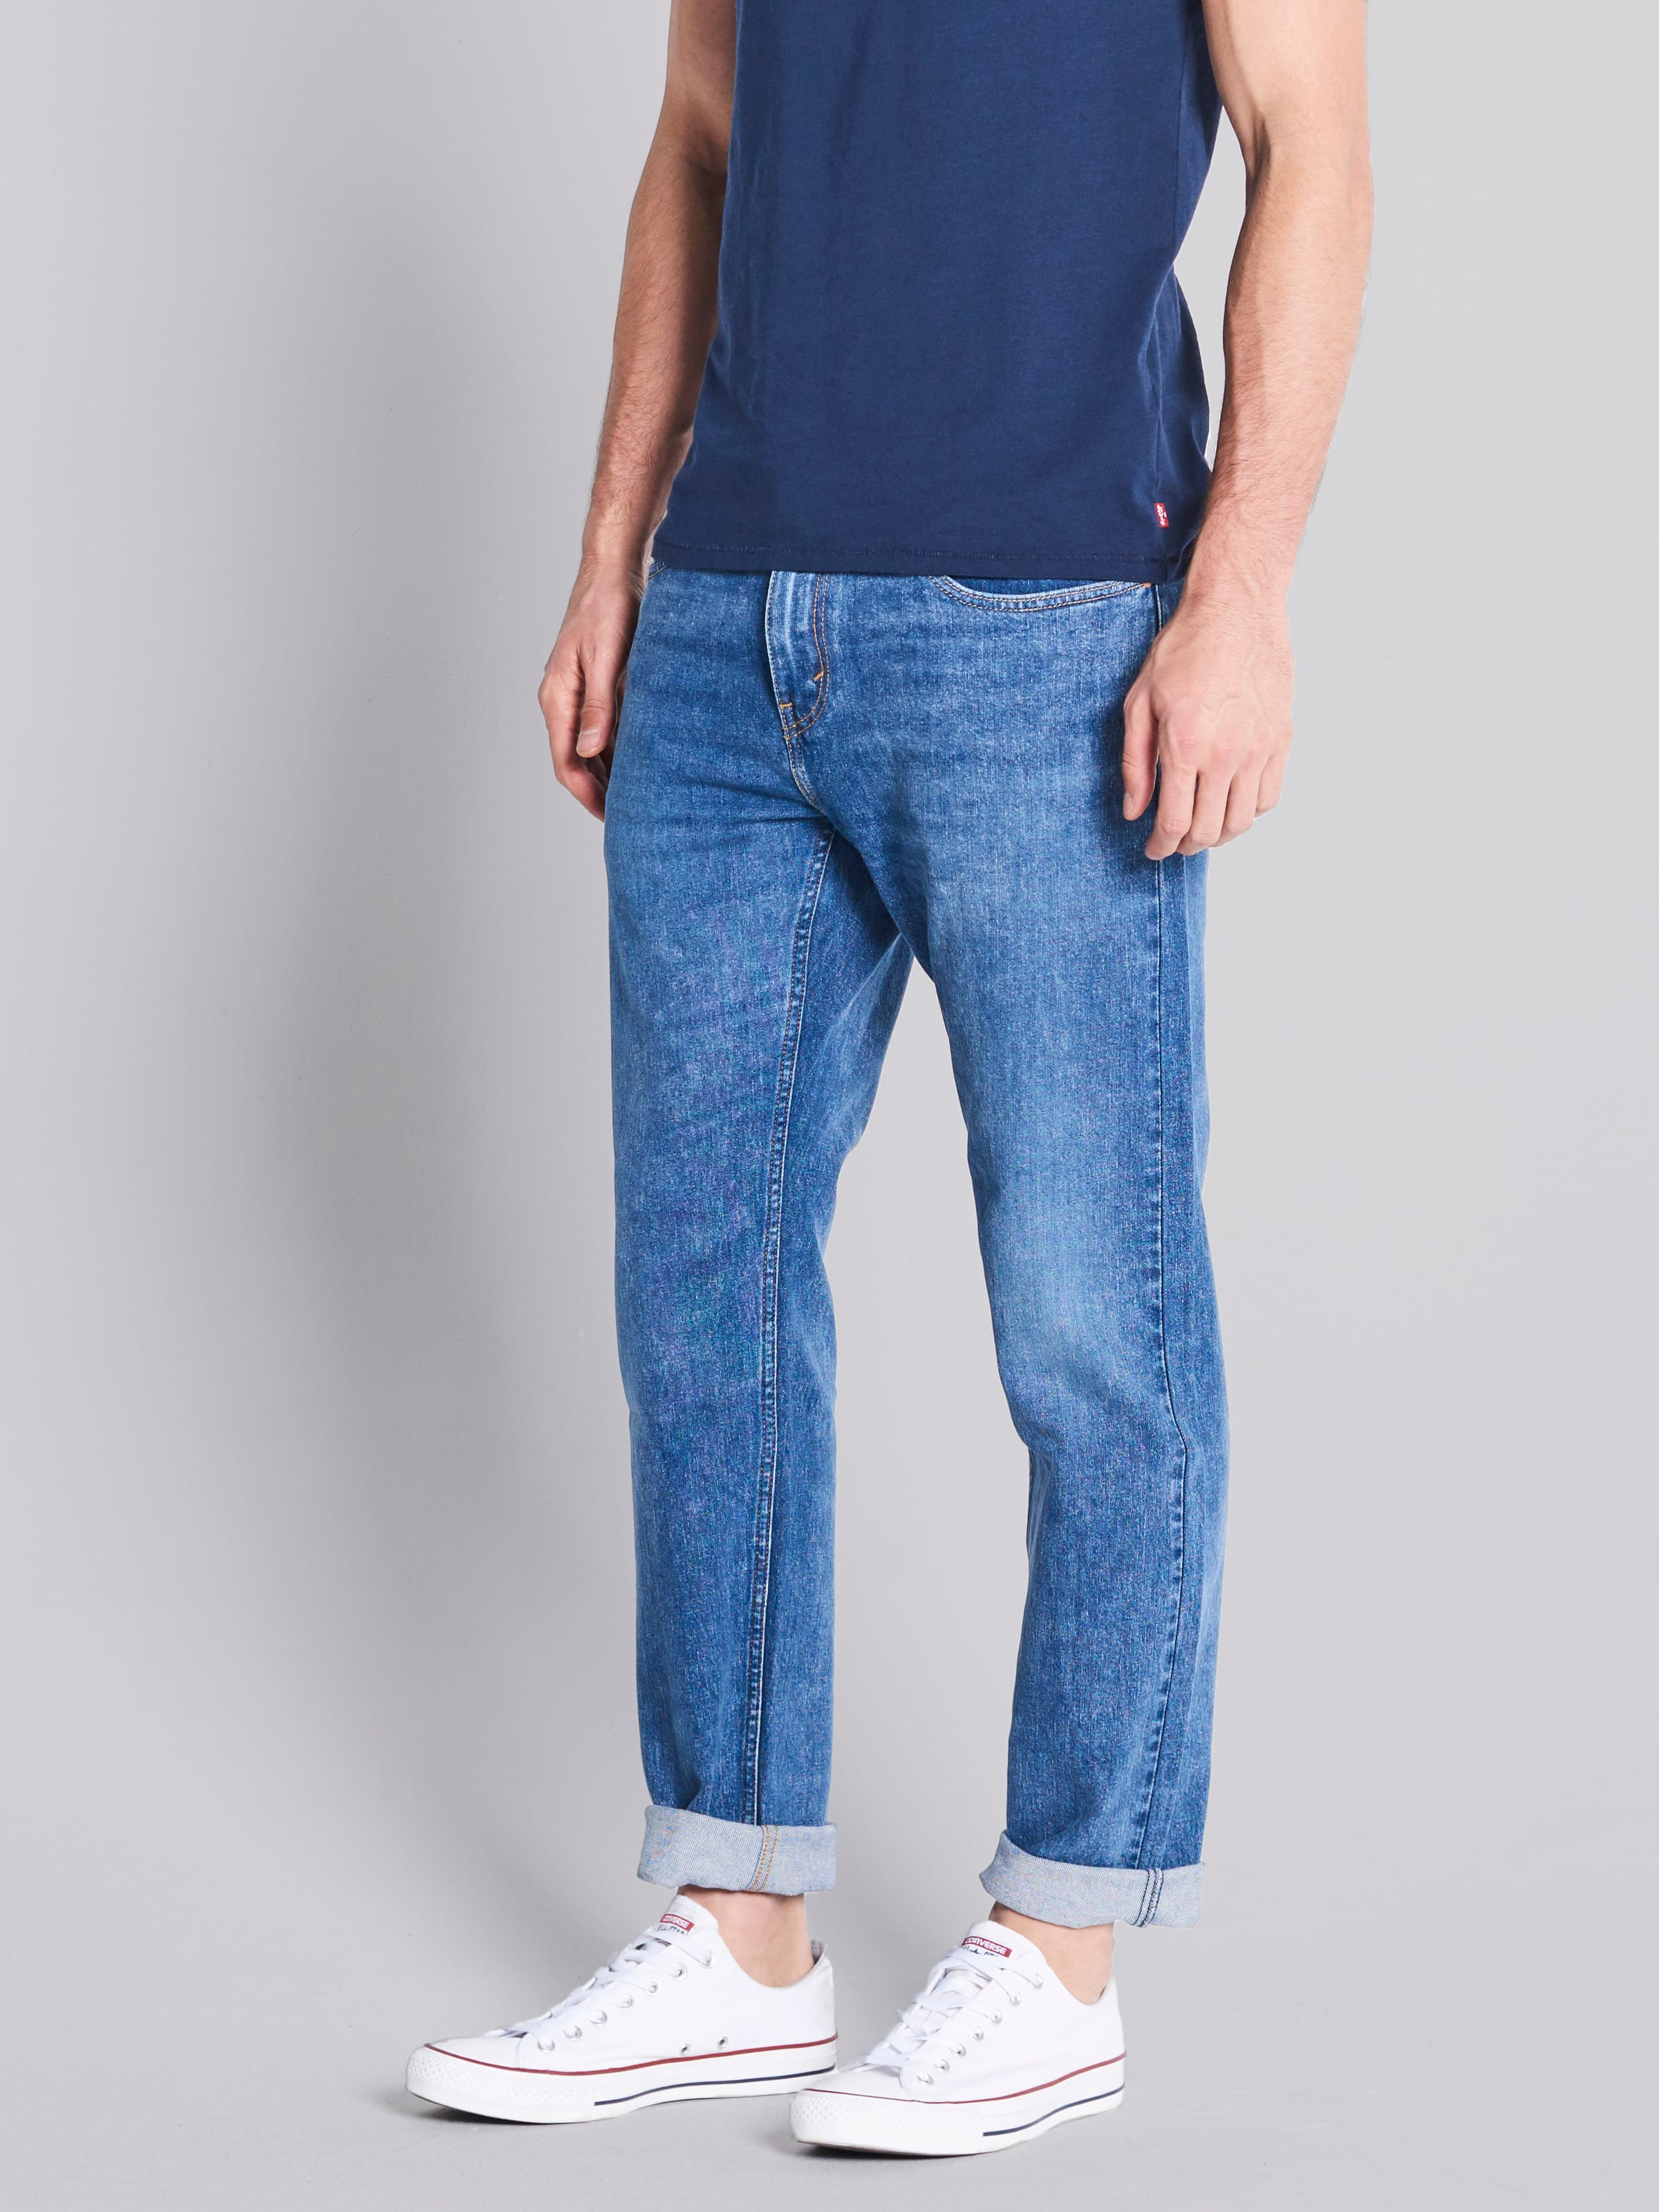 7c064489c11 ... Image for Levi s 502 Regular Taper Sea Salt 4 Way from Just Jeans